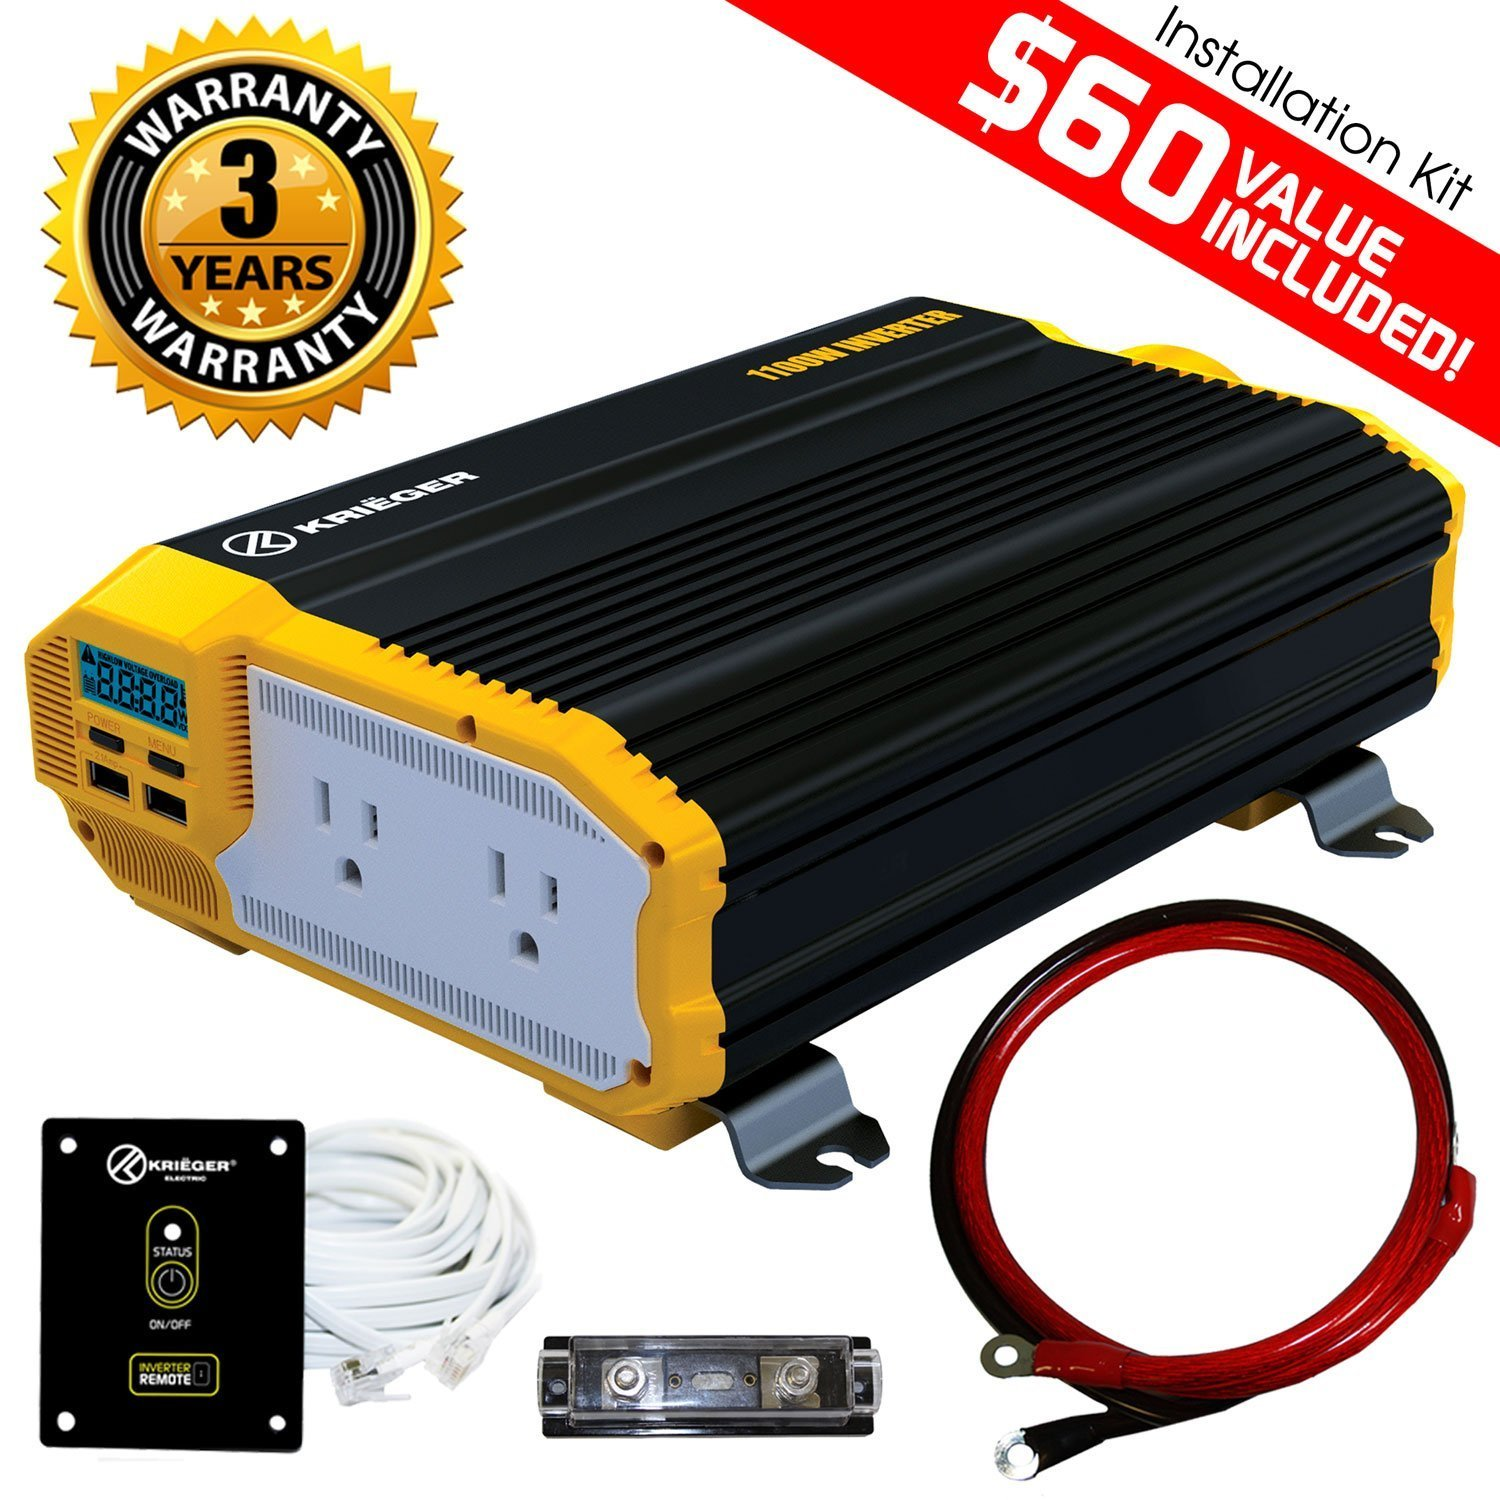 KREIGER 12 Volts Inverter